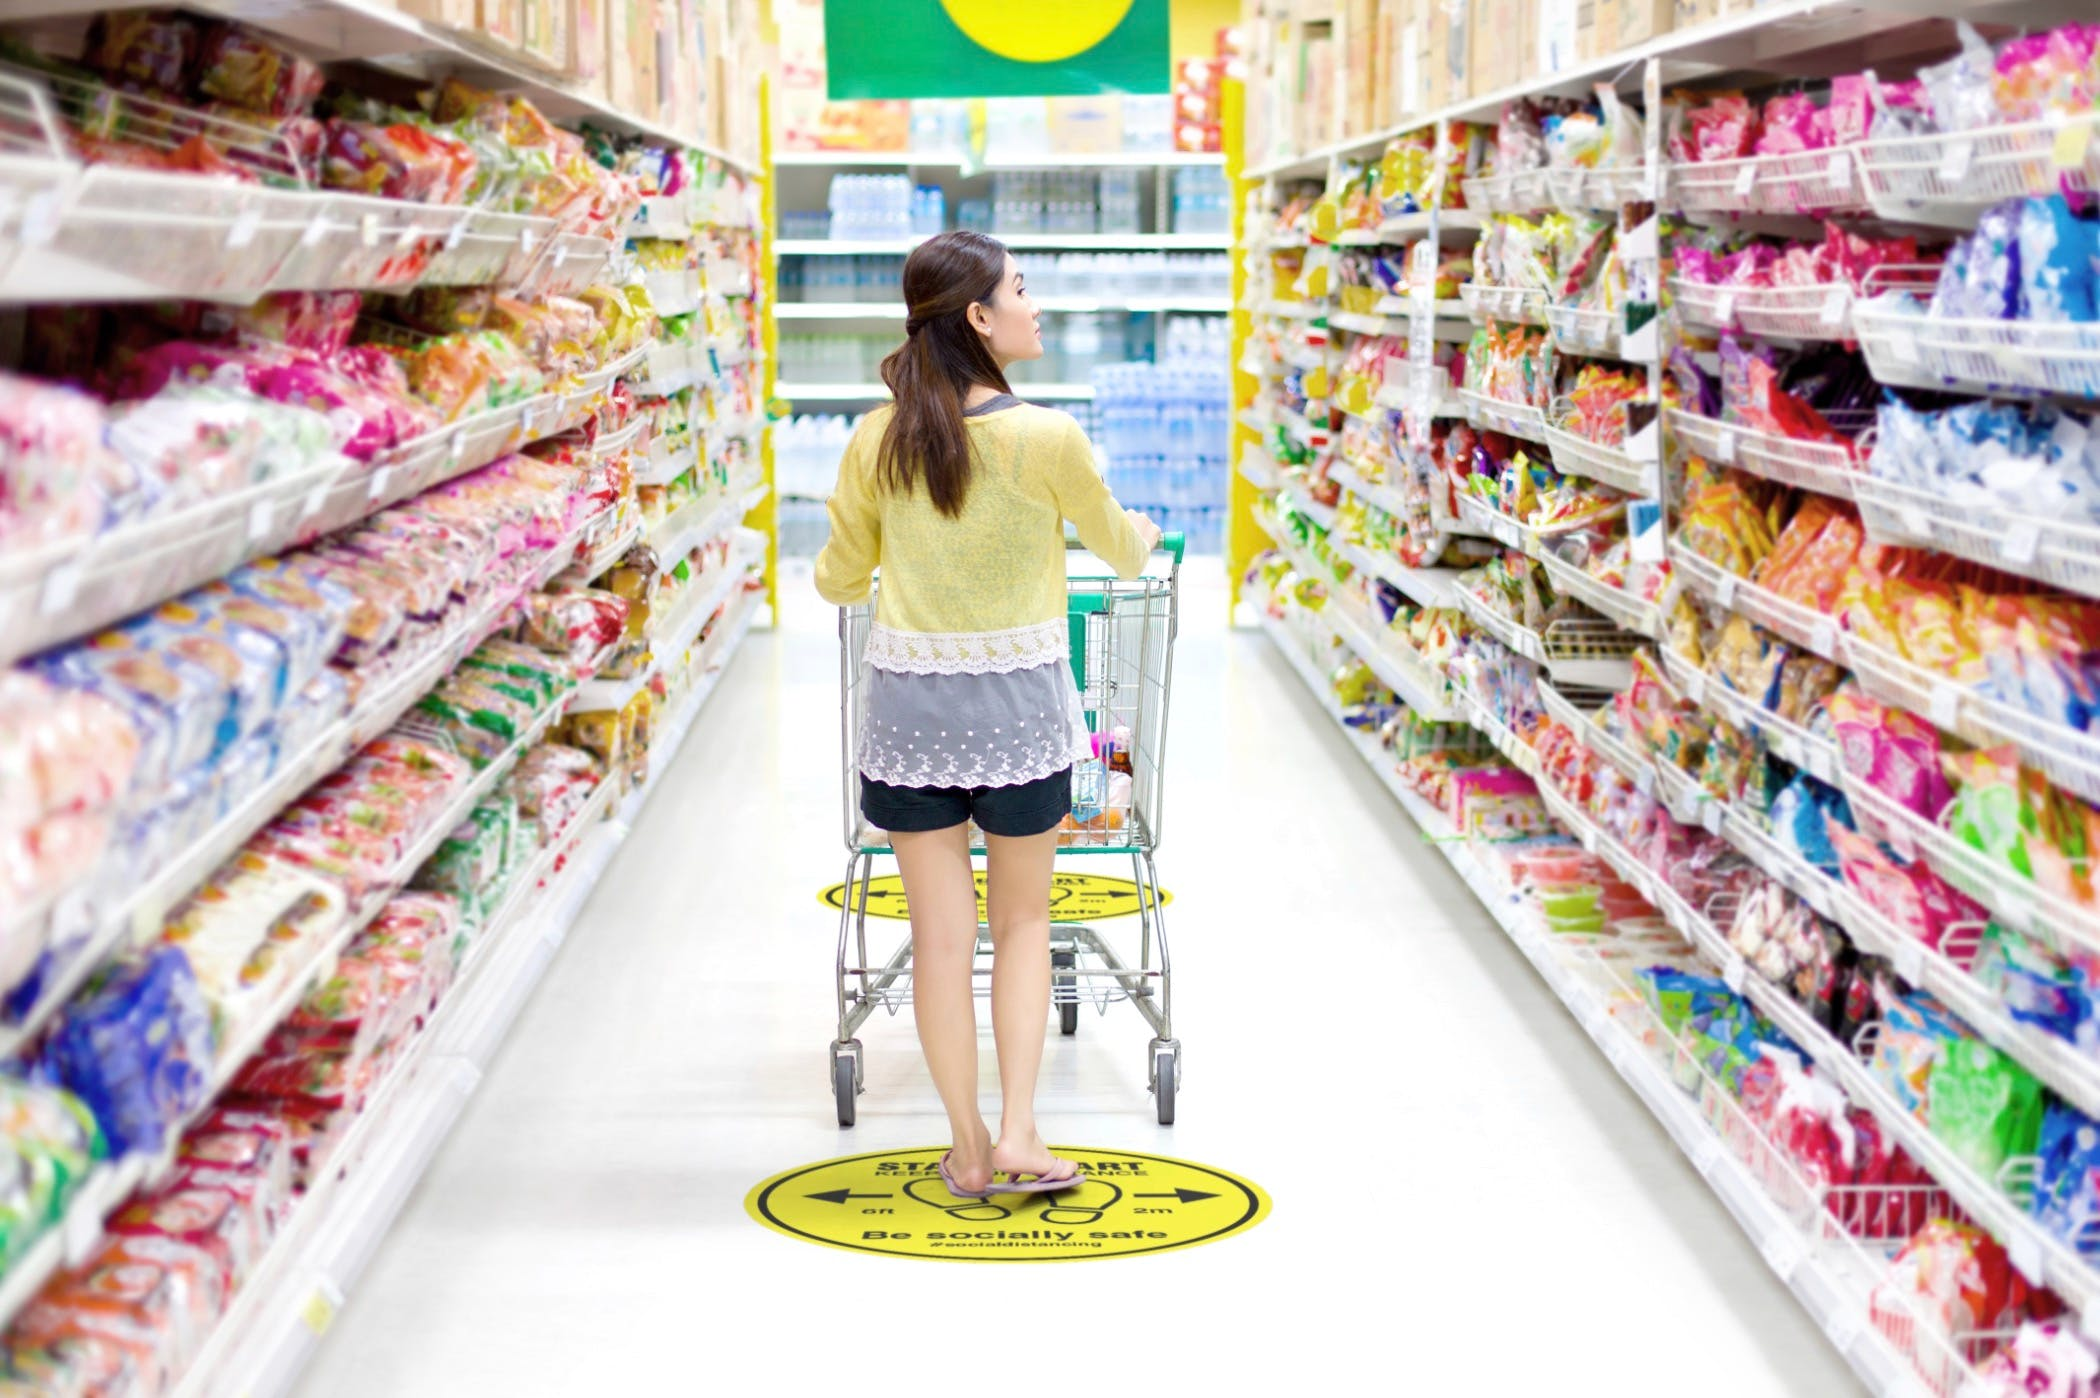 Floor sticker showing safety practices while woman shops in a grocery store